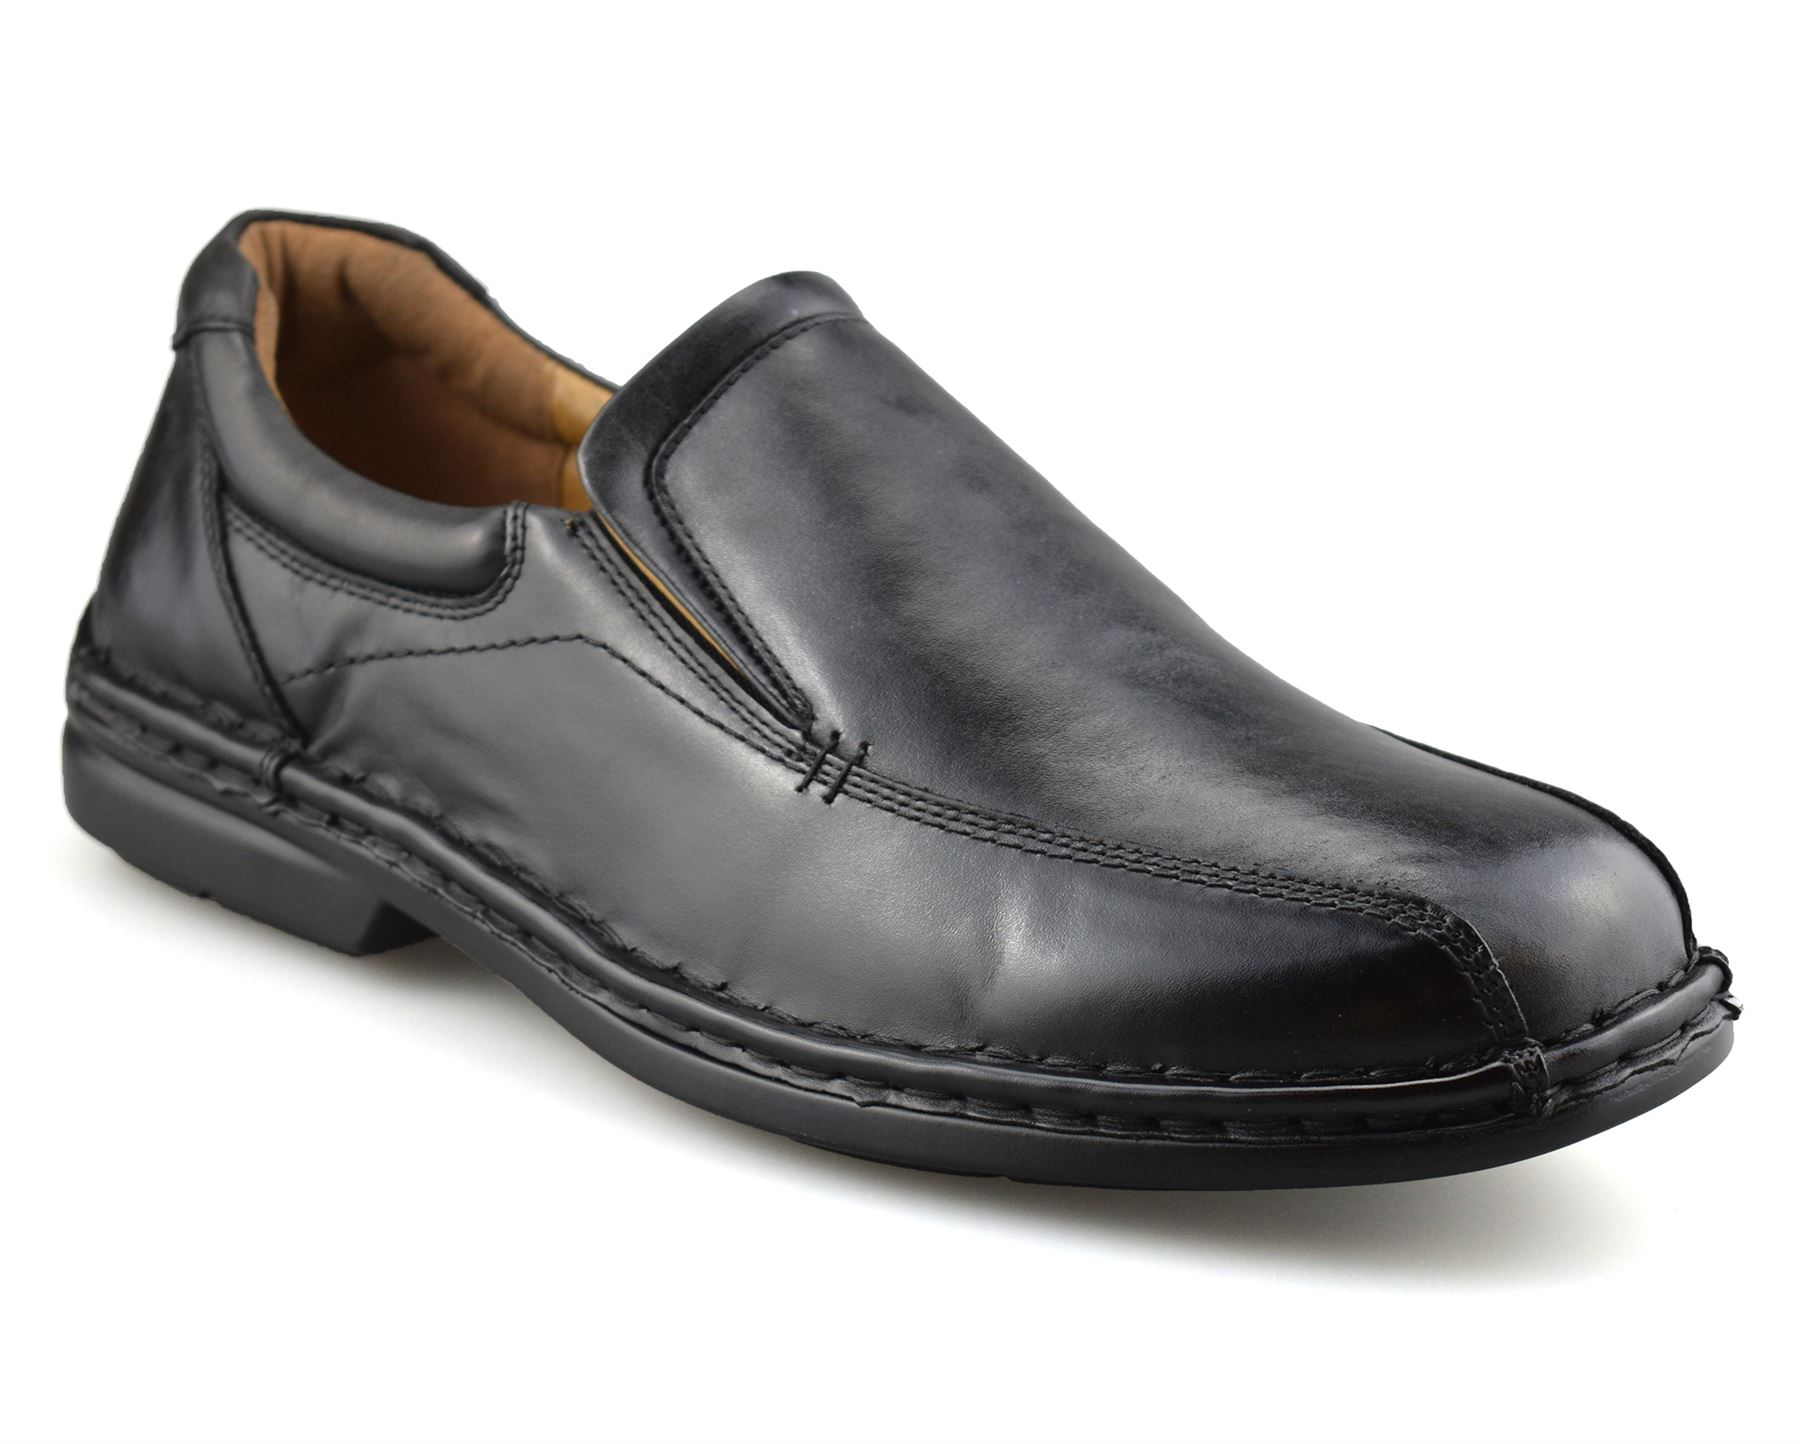 Mens-Hush-Puppies-Leather-Wide-Fit-Smart-Casual-Lace-Up-Work-Office-Shoes-Size thumbnail 15